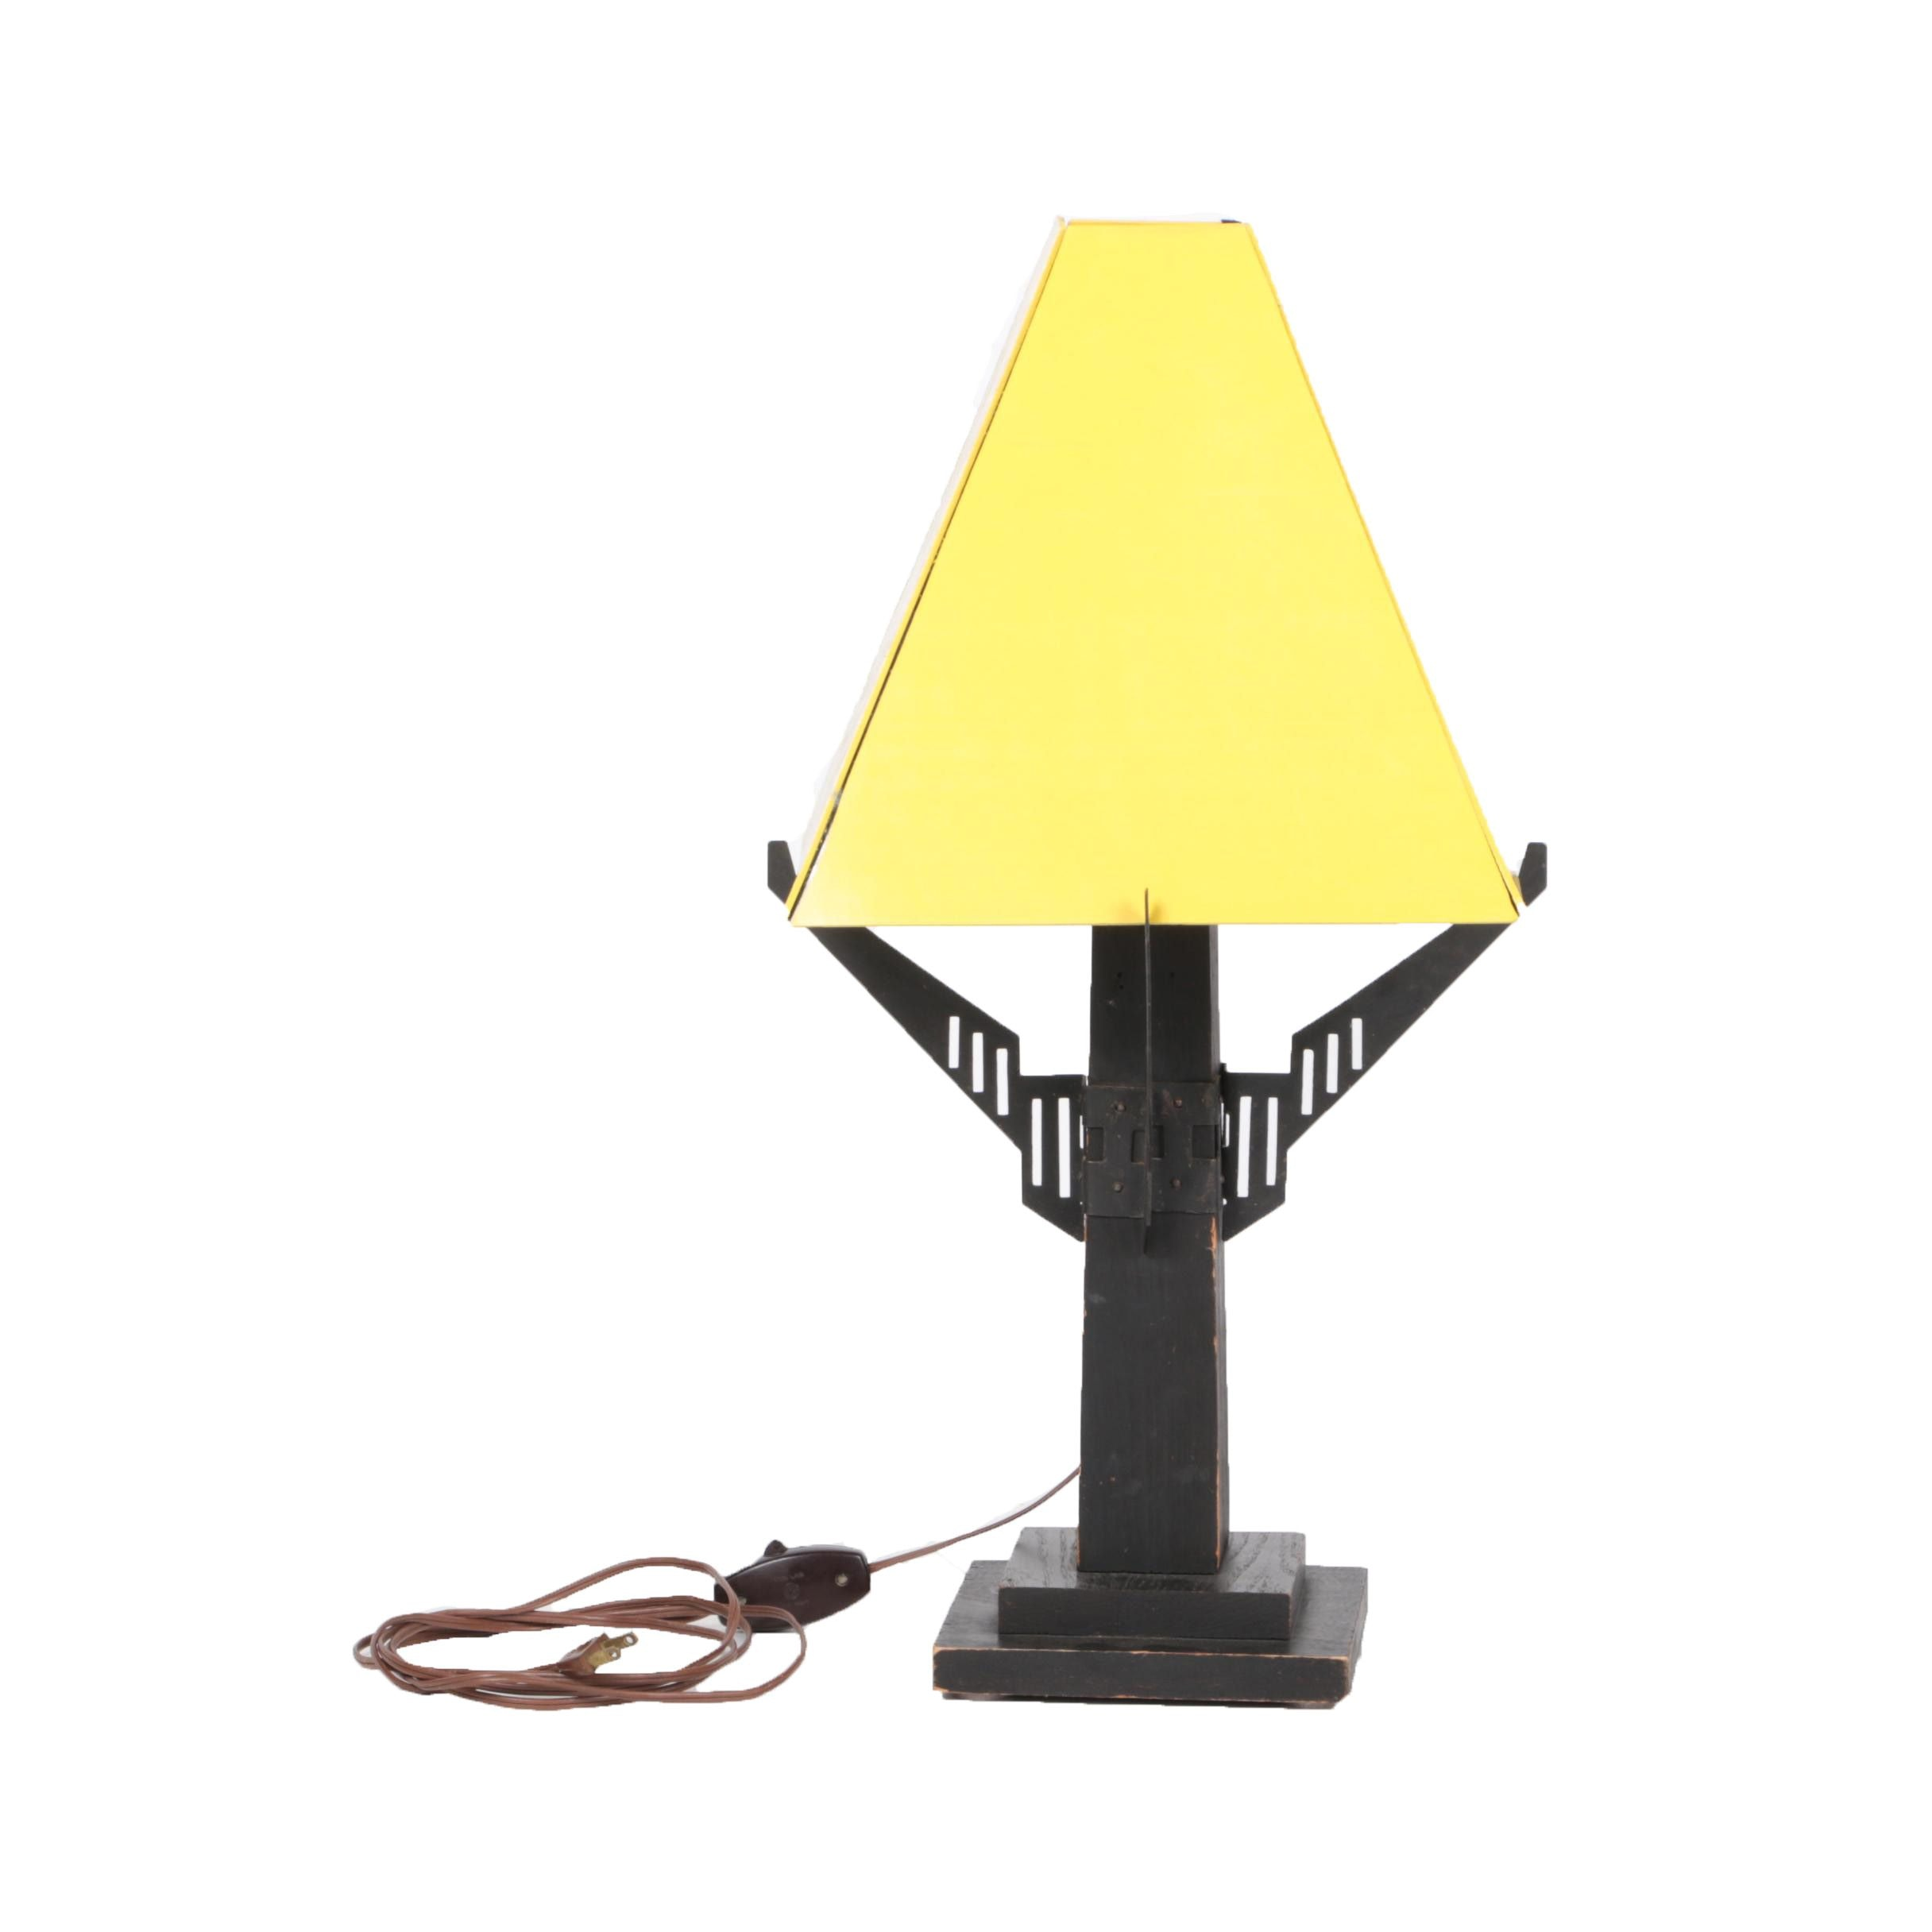 Wooden Table Lamp with Yellow Pyramid Lampshade